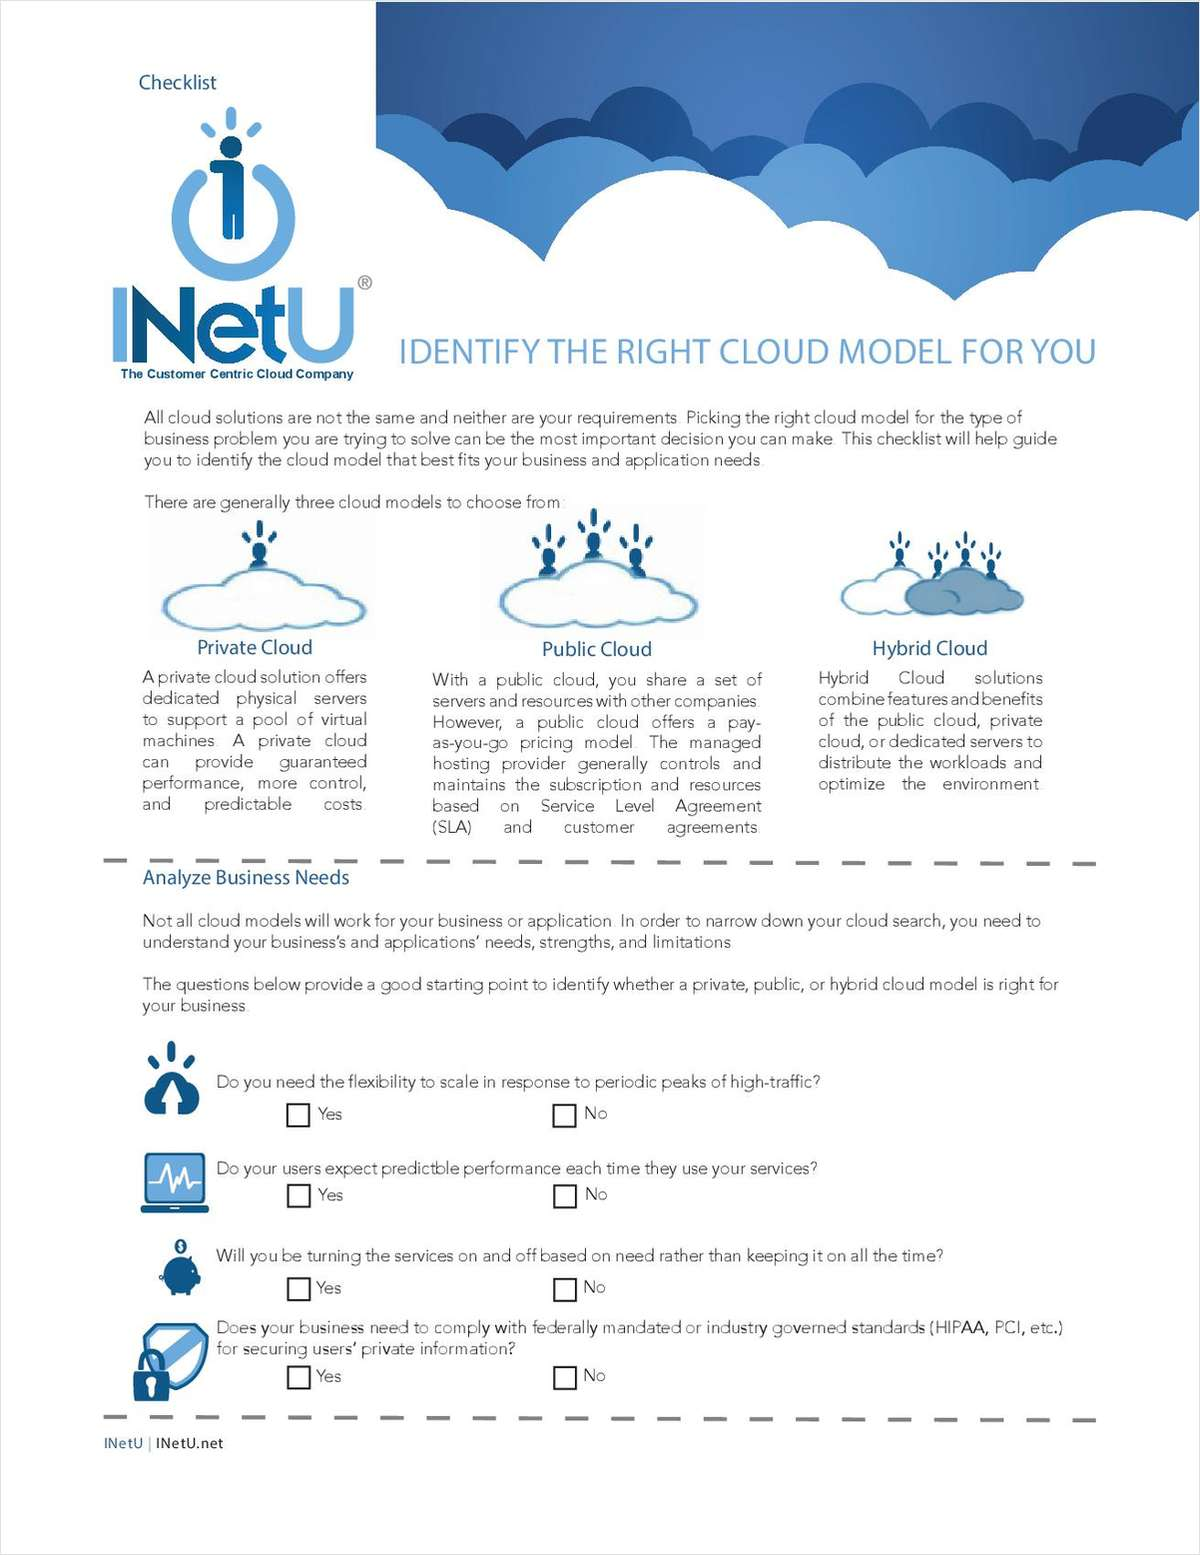 Identify the Right Cloud Model for You